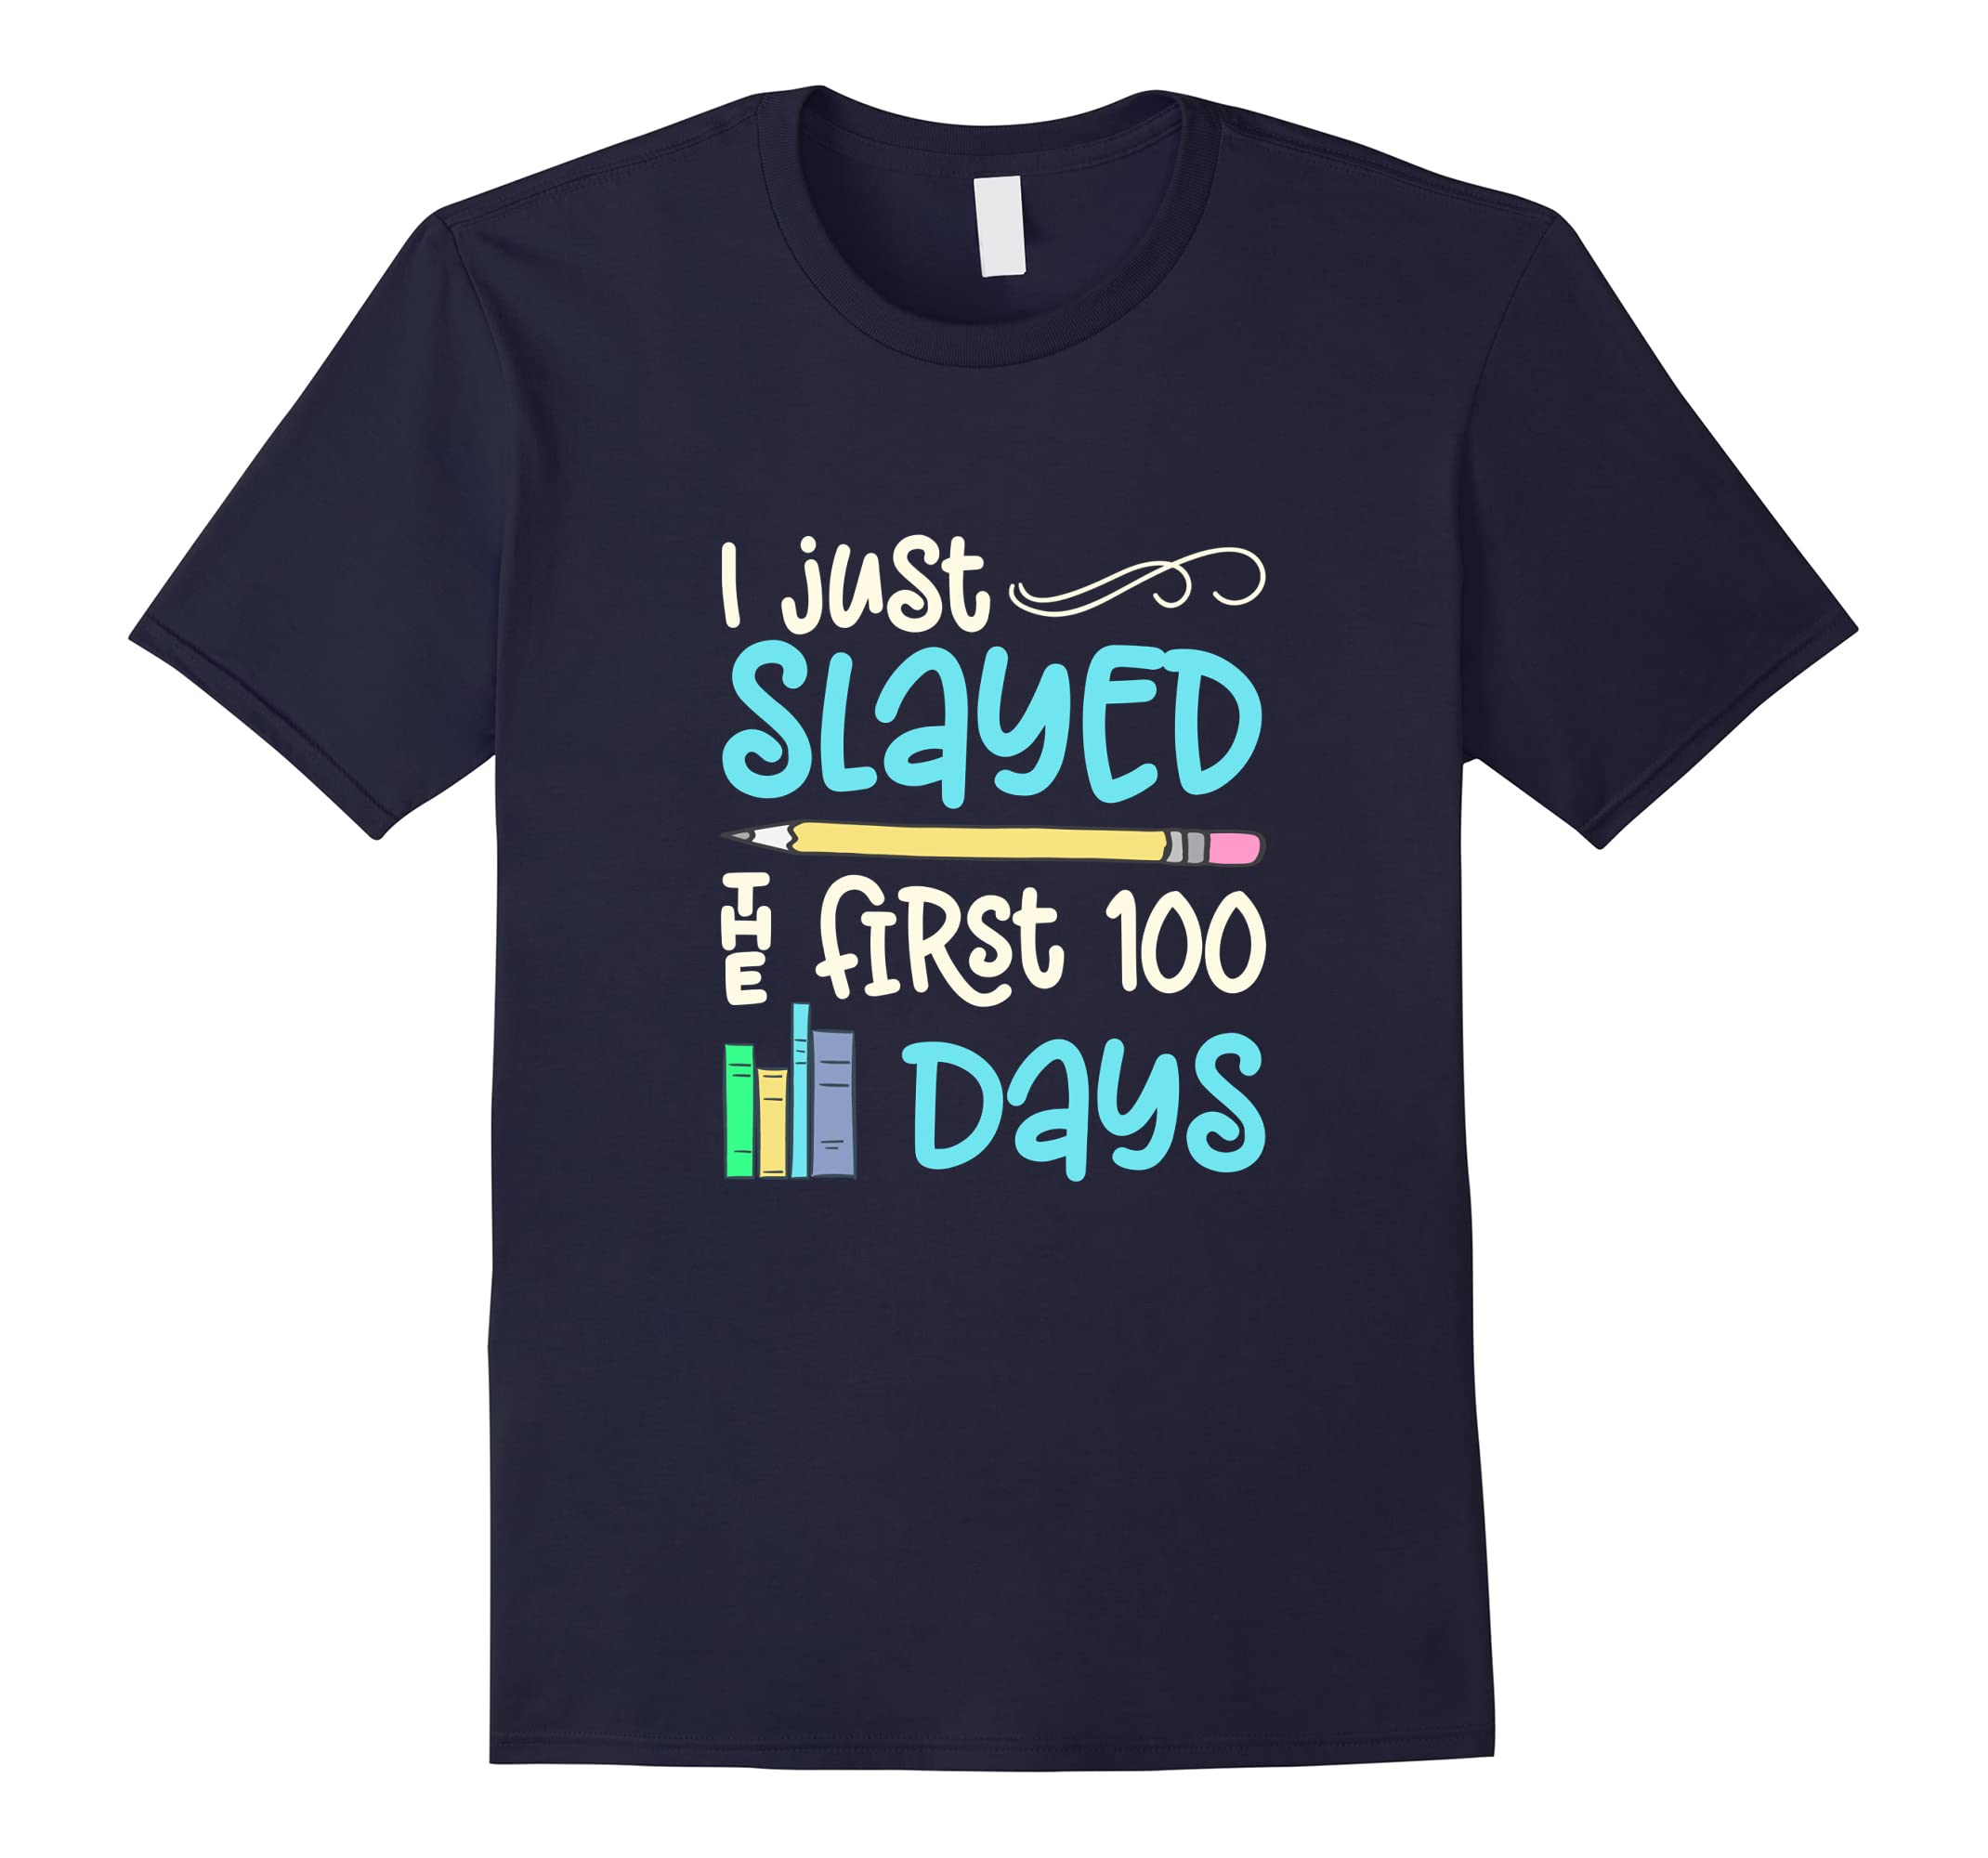 100 Days School Shirt For Teachers Students Book Graphic Tee-ah my shirt one gift